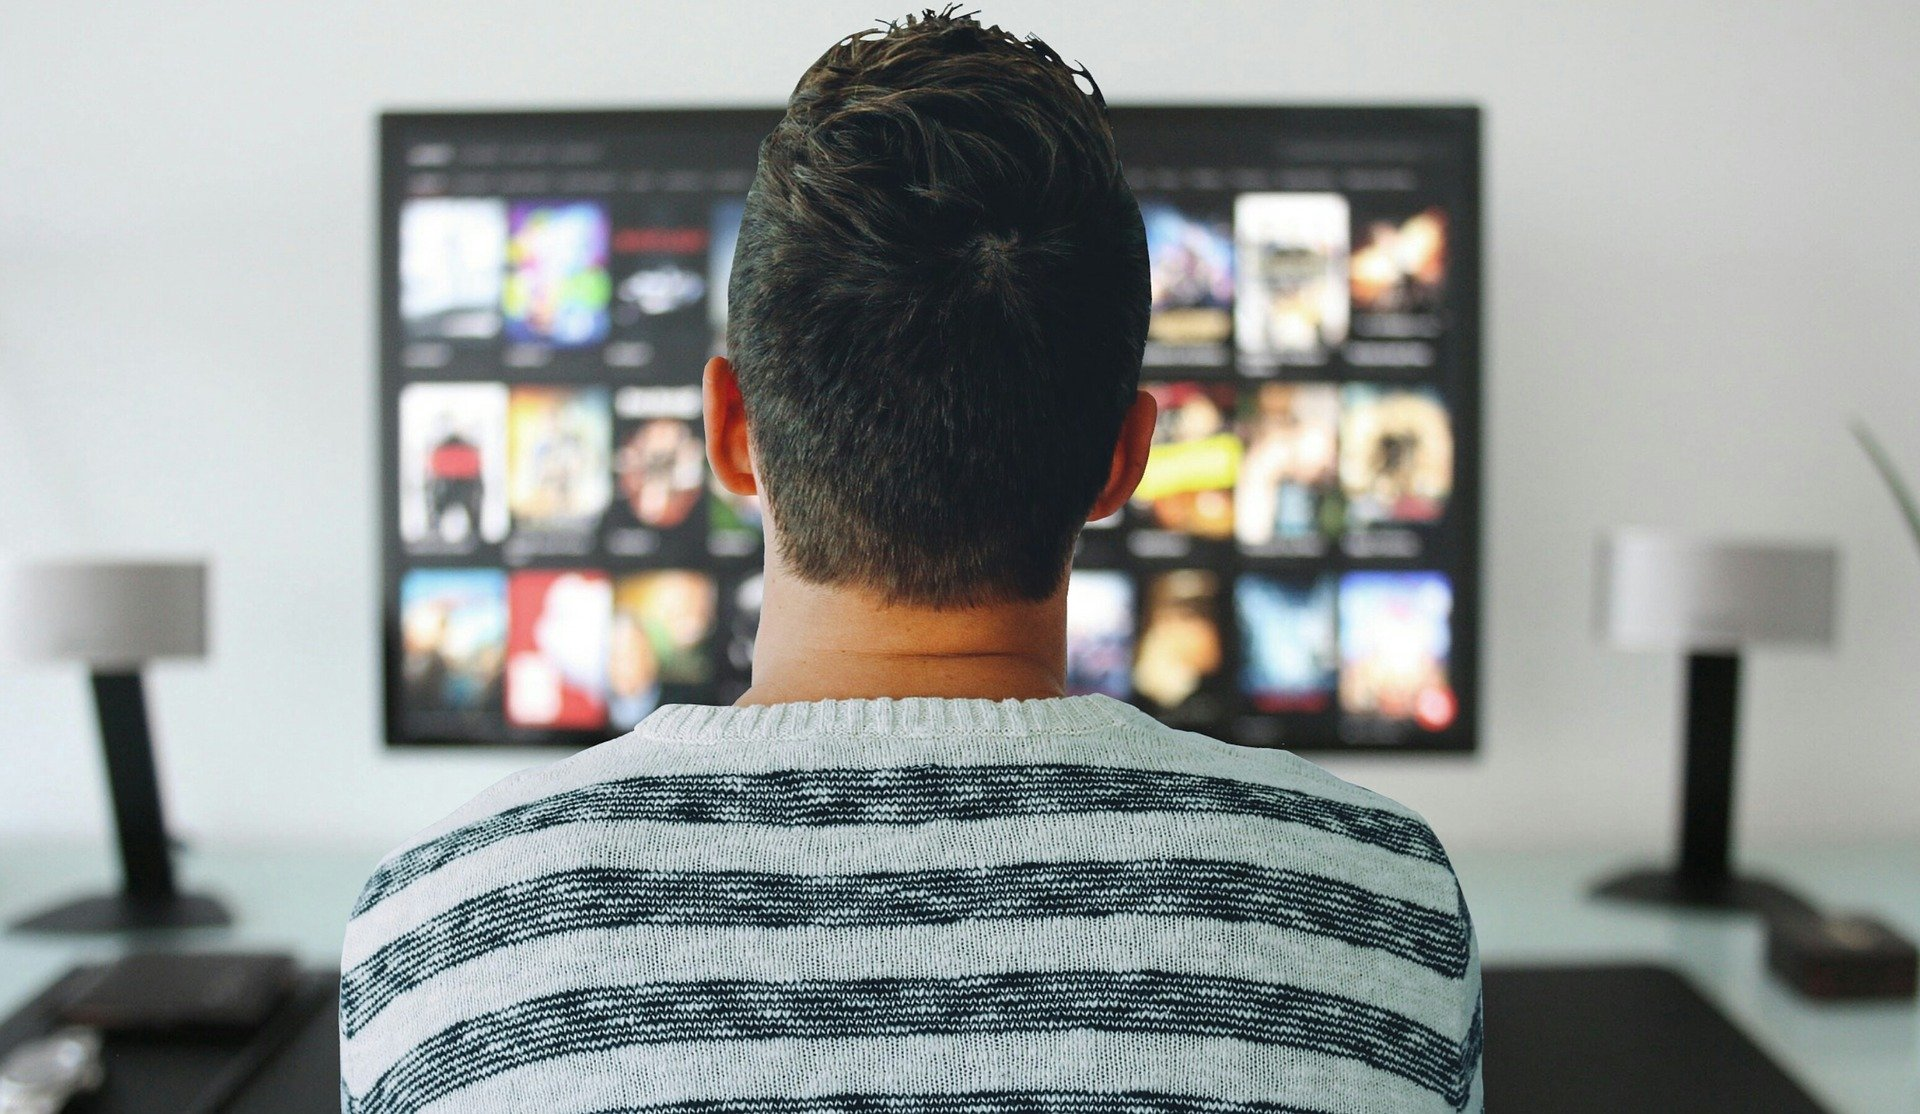 Man watching a streaming service